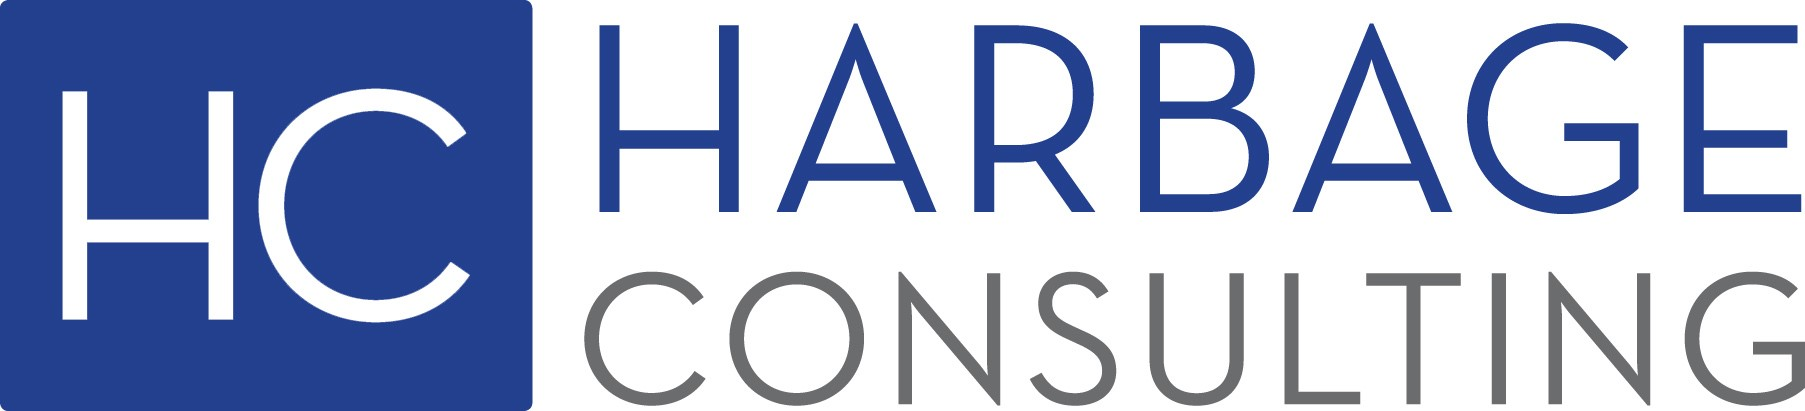 Harbage Consulting logo